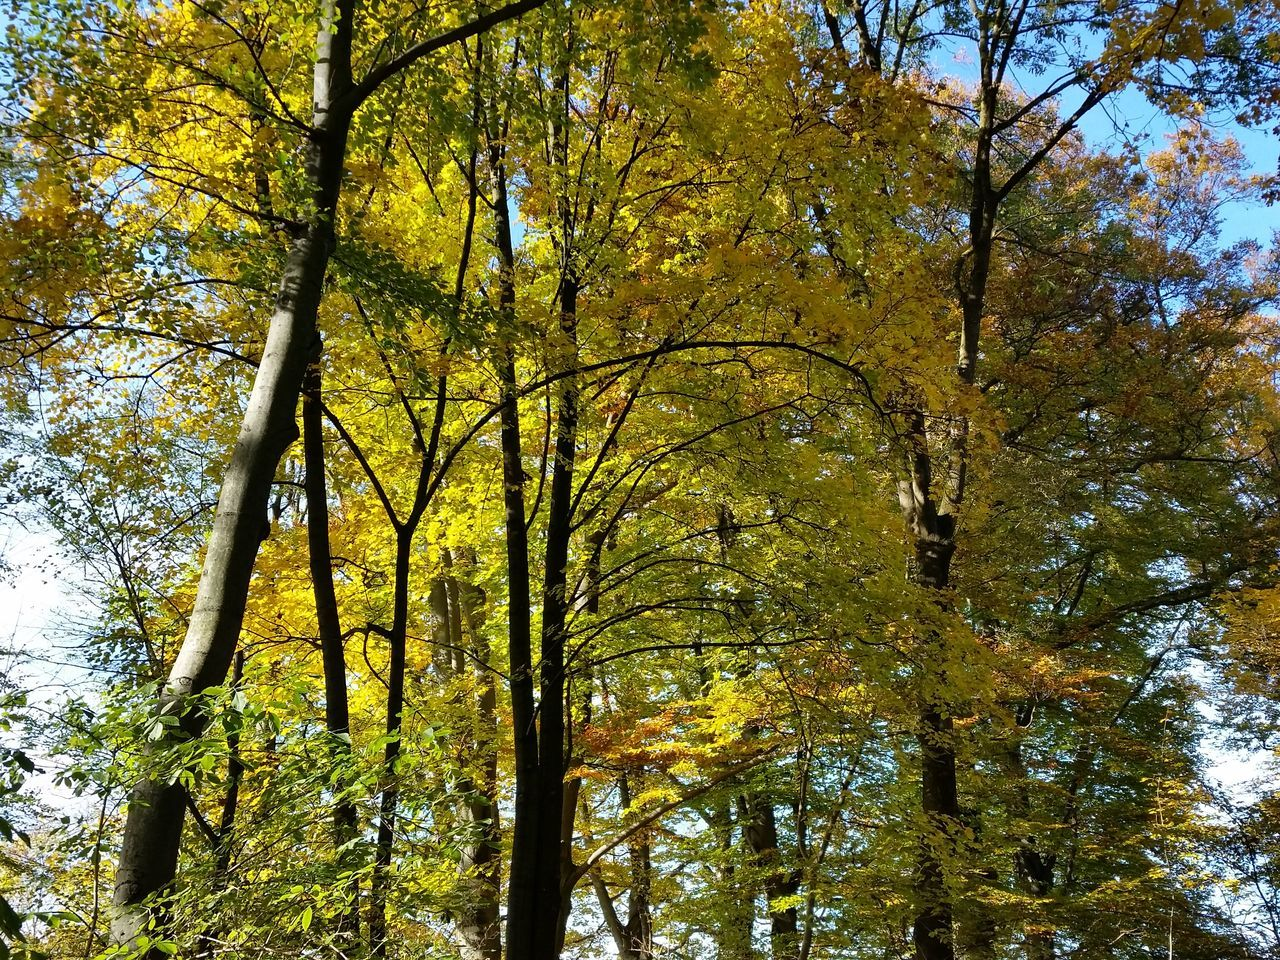 tree, autumn, nature, forest, beauty in nature, change, low angle view, leaf, tranquility, growth, day, branch, scenics, outdoors, tranquil scene, no people, tree trunk, sky